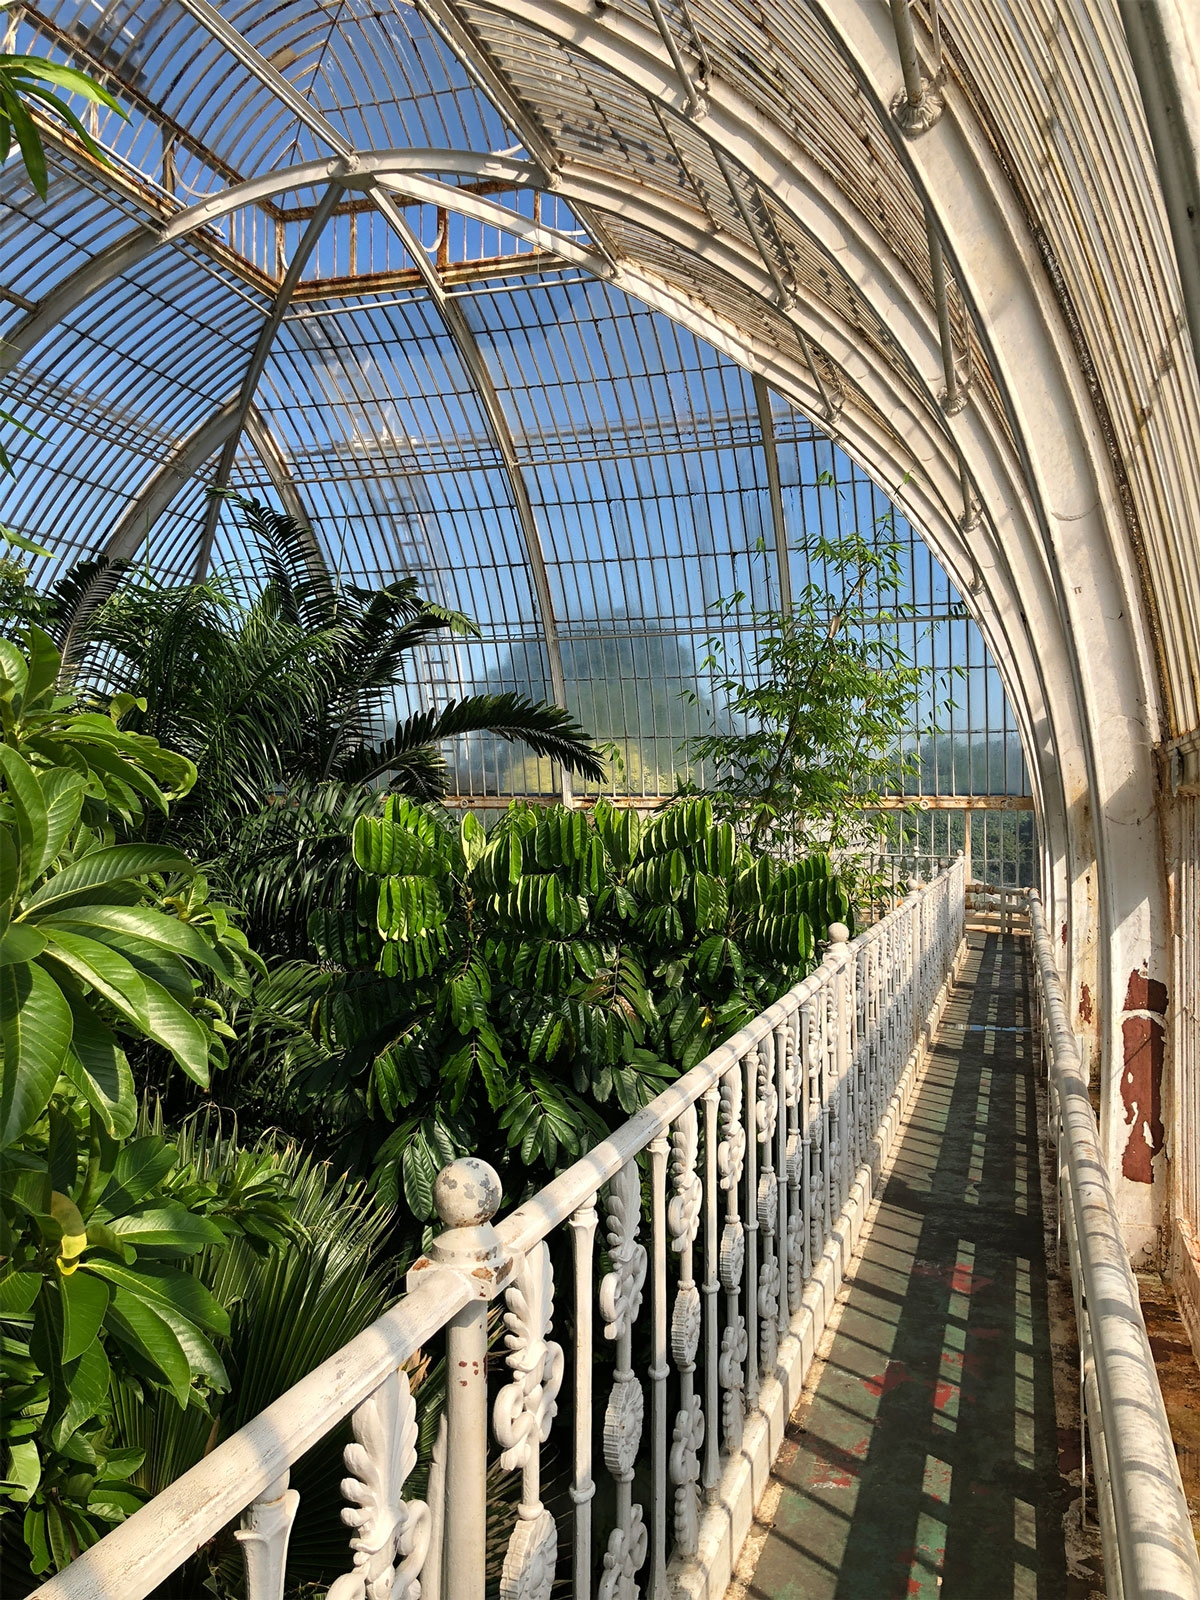 The interior of the Palm House Kew Gardens from a balcony amongst the tree-tops. June 2018